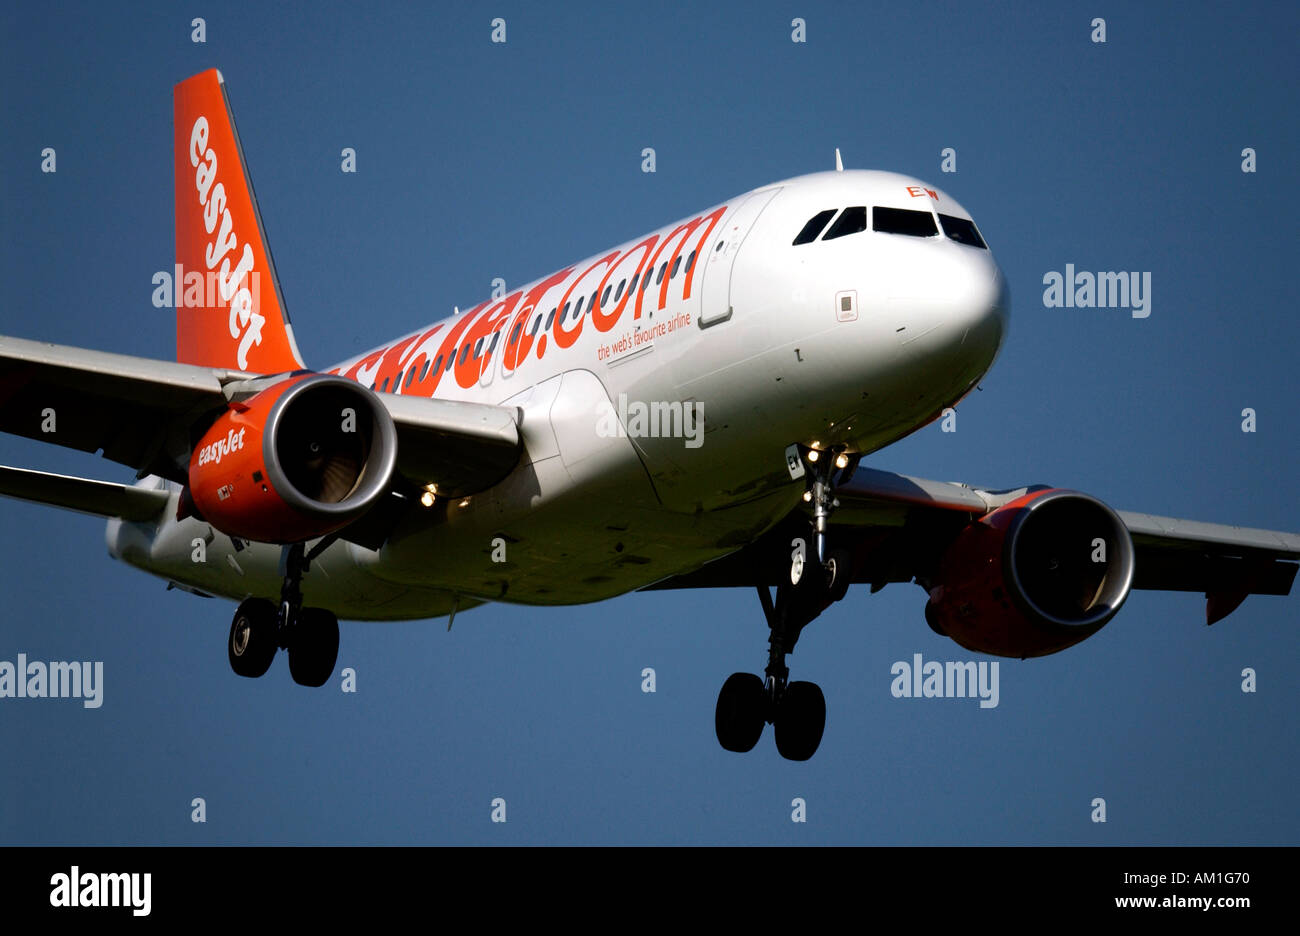 At London Gatwick Airport an EasyJet plane comes in to land - Stock Image